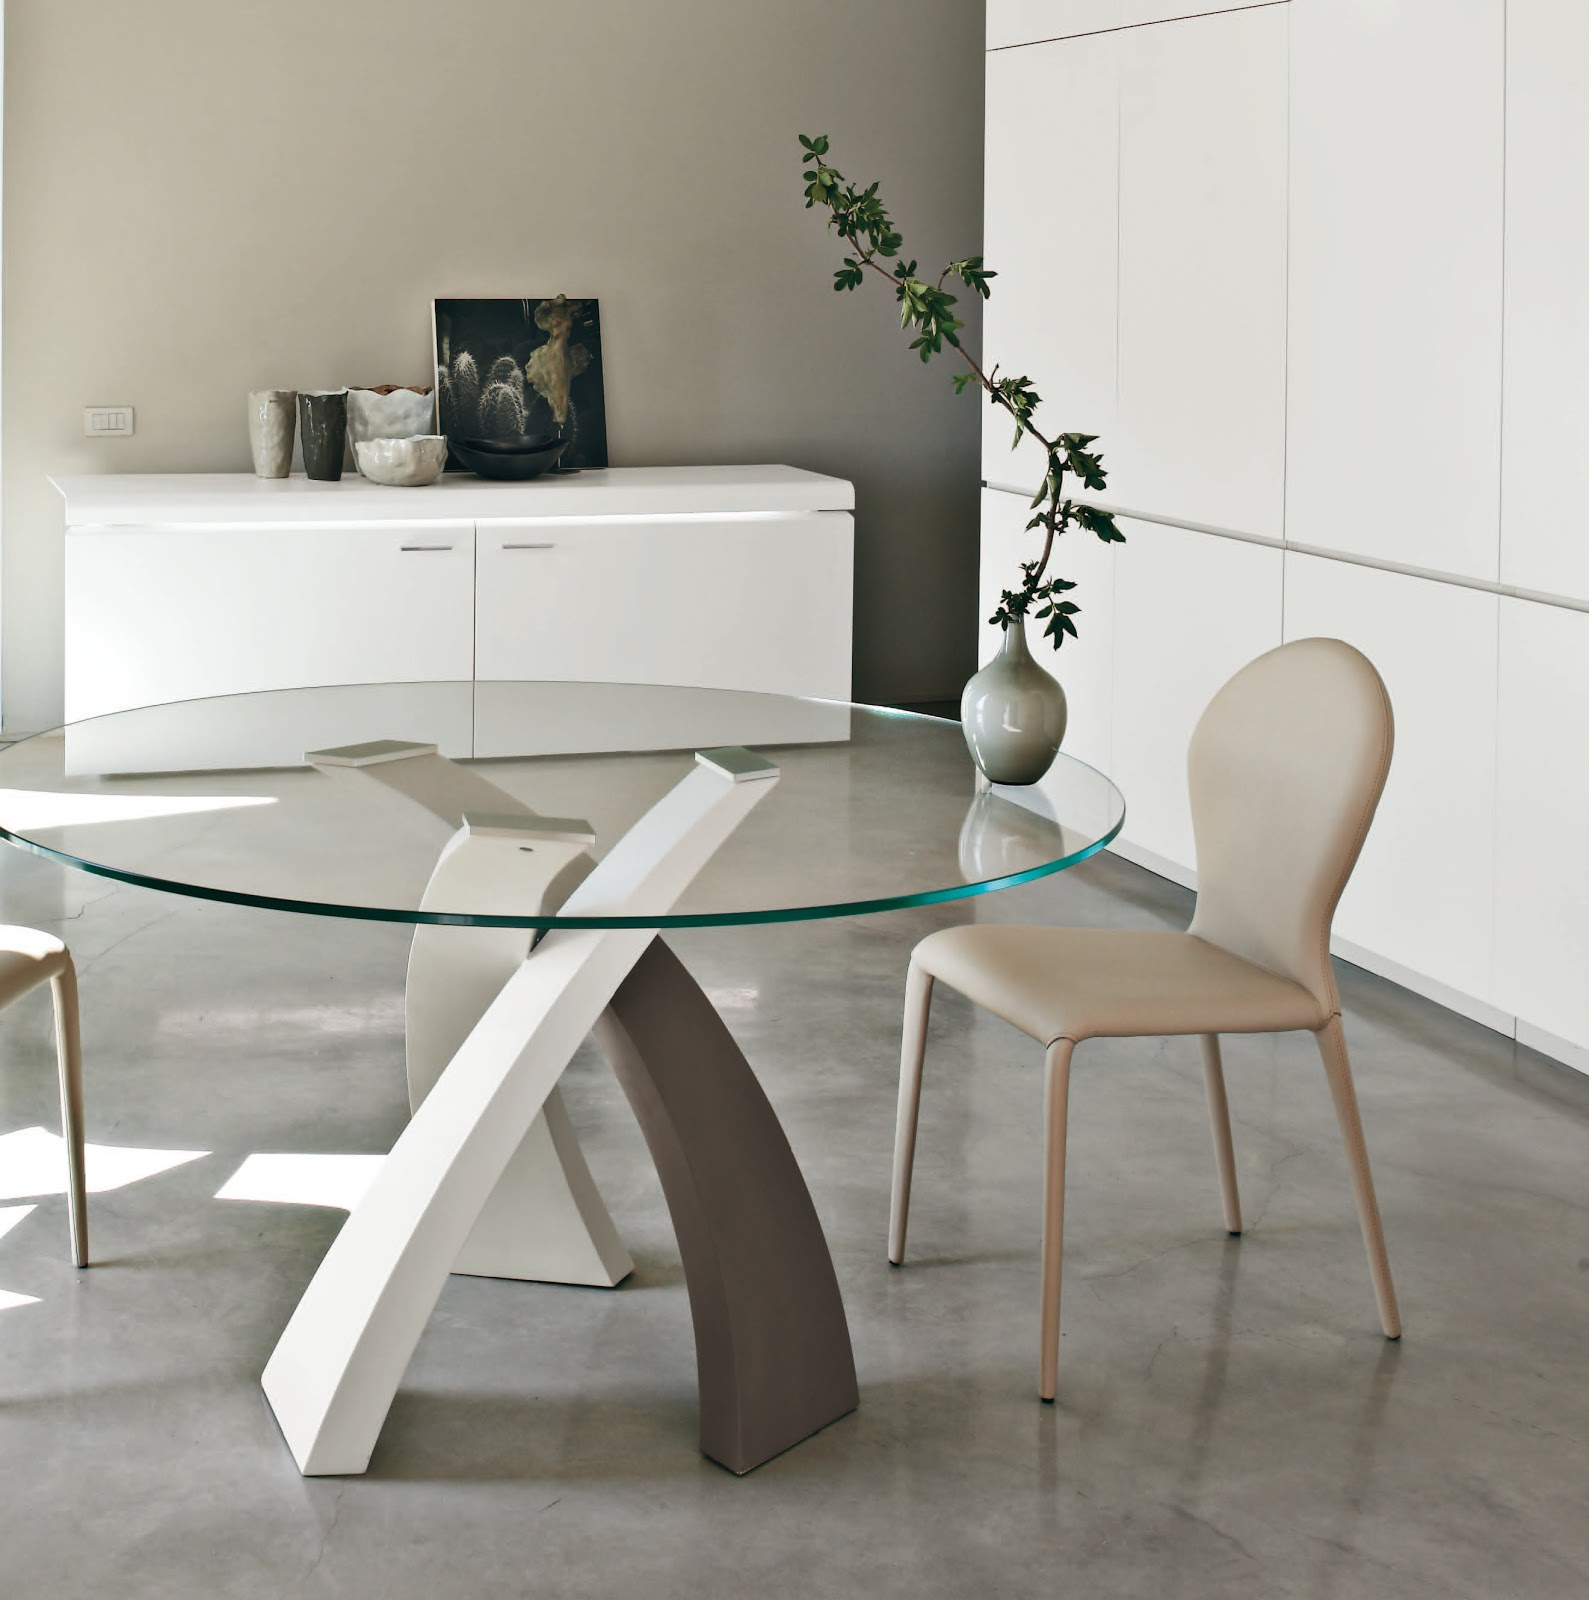 Inspiration mobilier design - Table ronde cuisine design ...